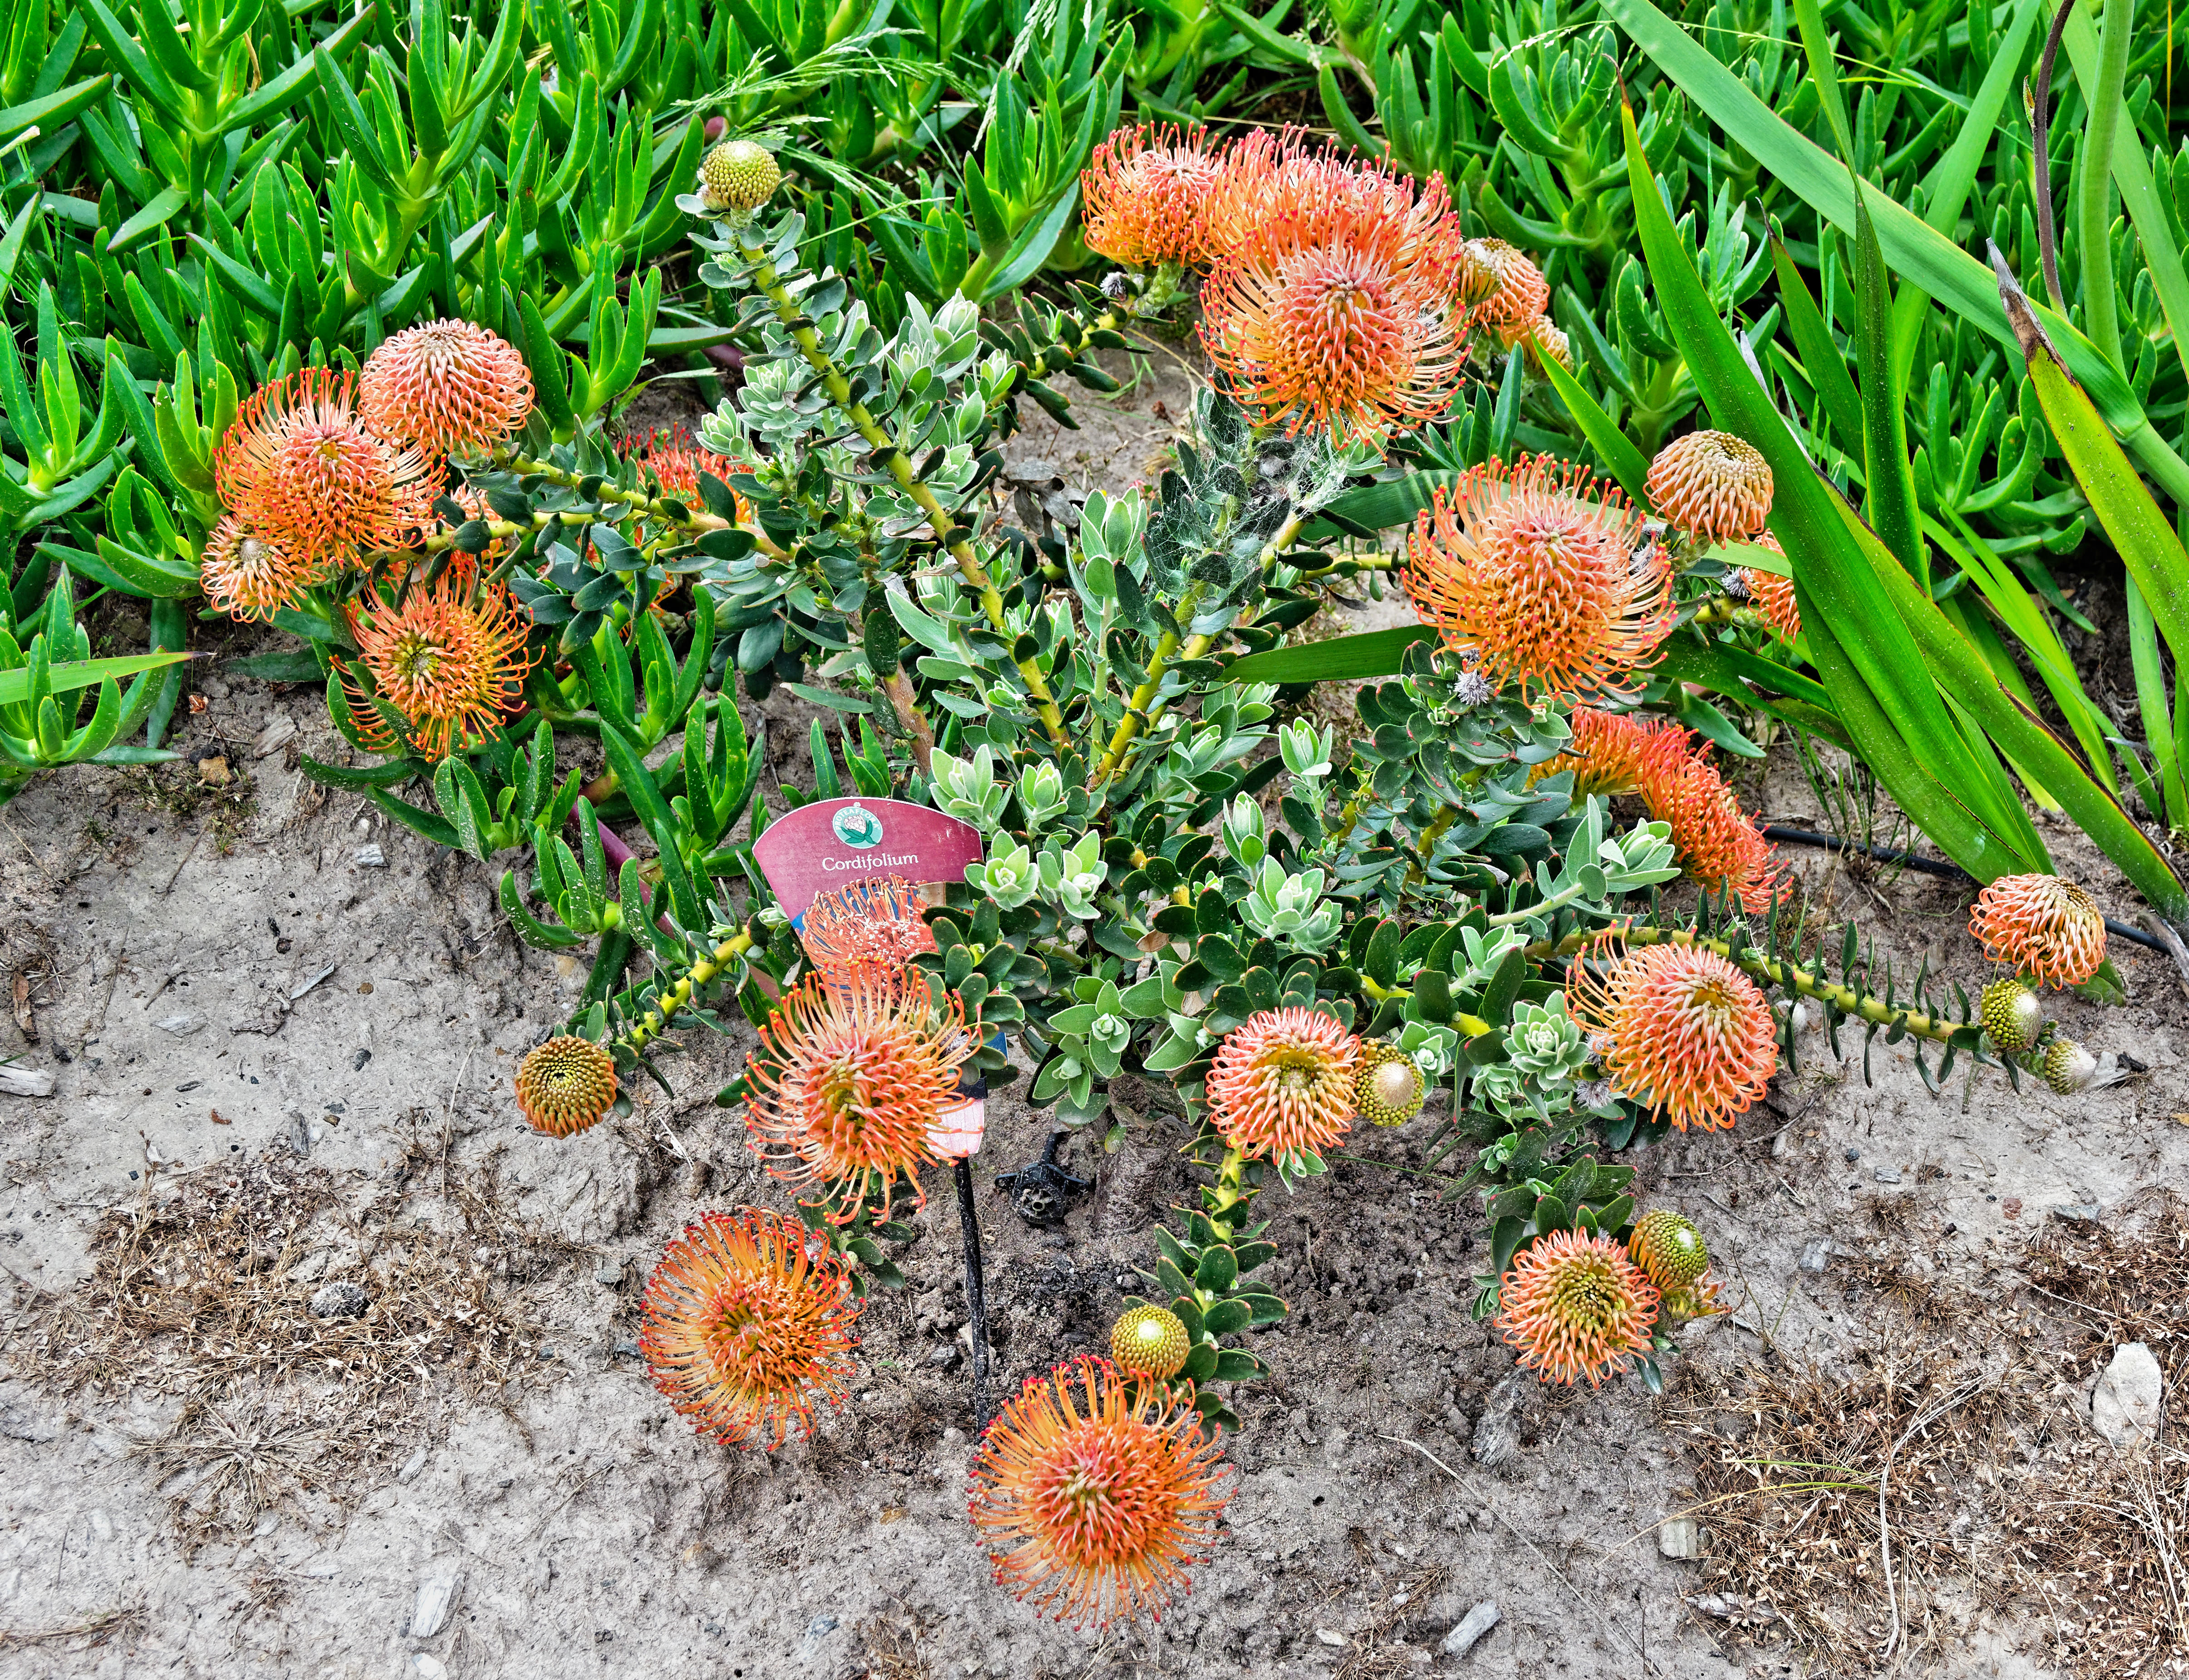 This should be Leucospermum-cordifolium.jpeg.  Is it missing?